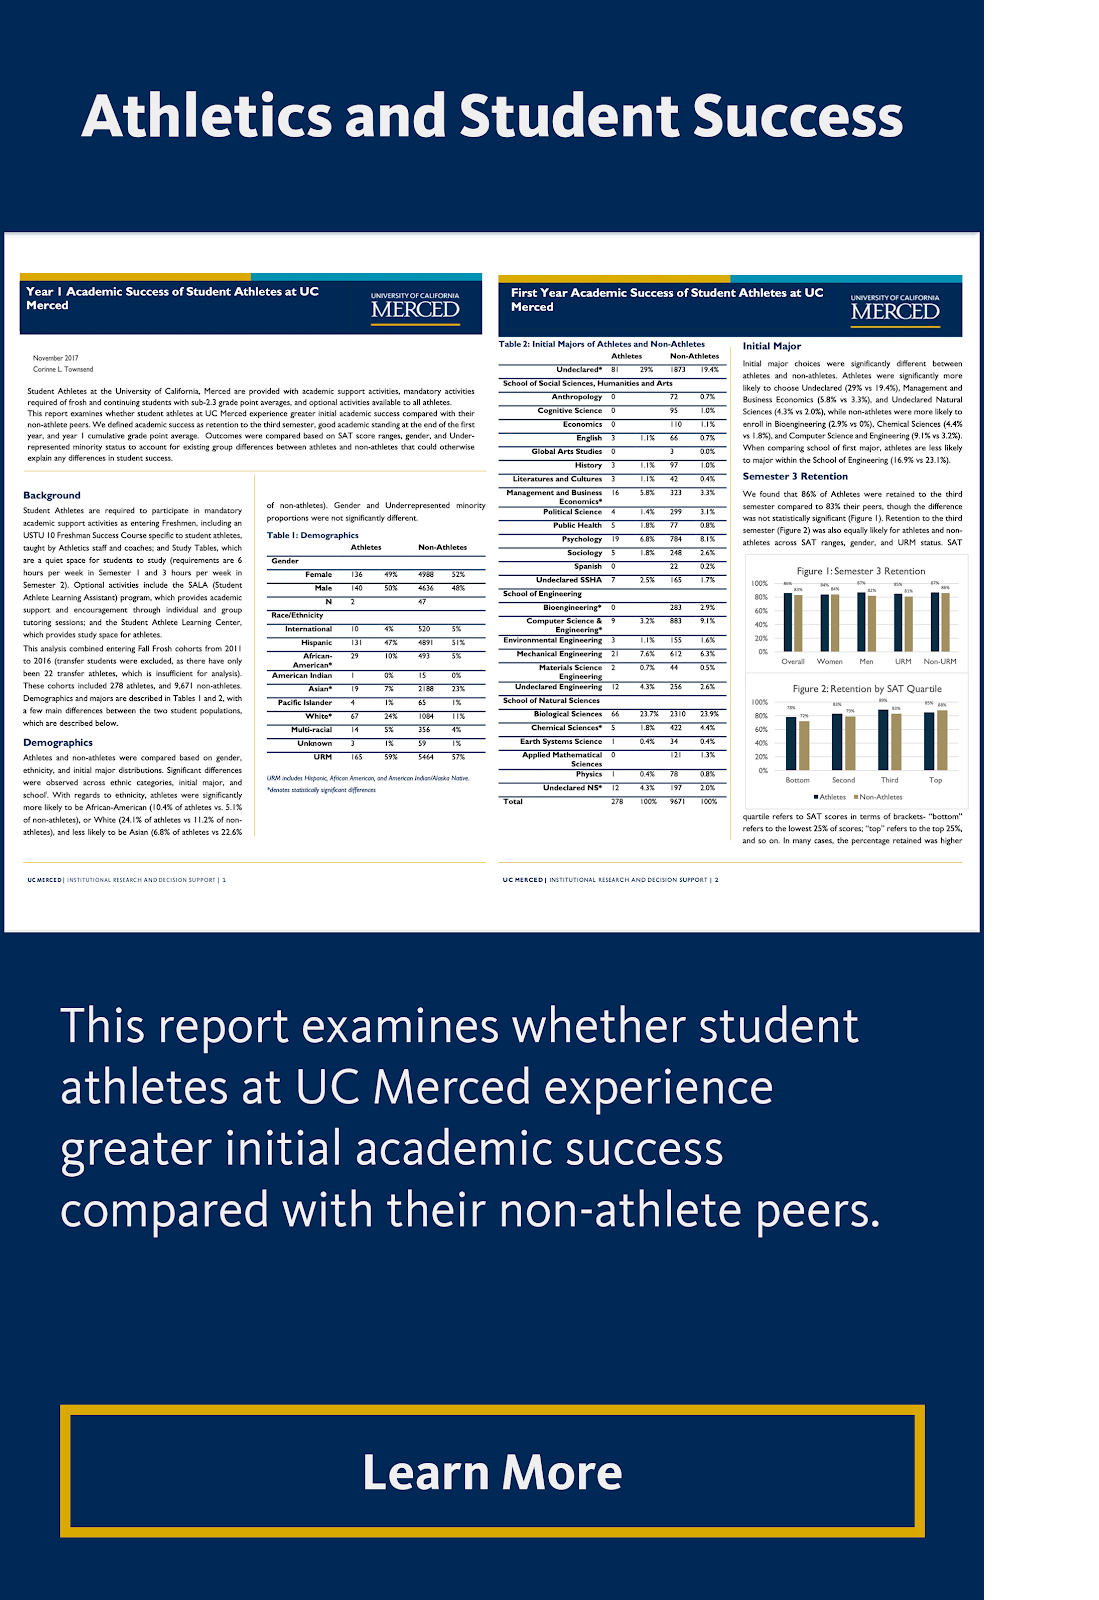 Athletics and Student Success